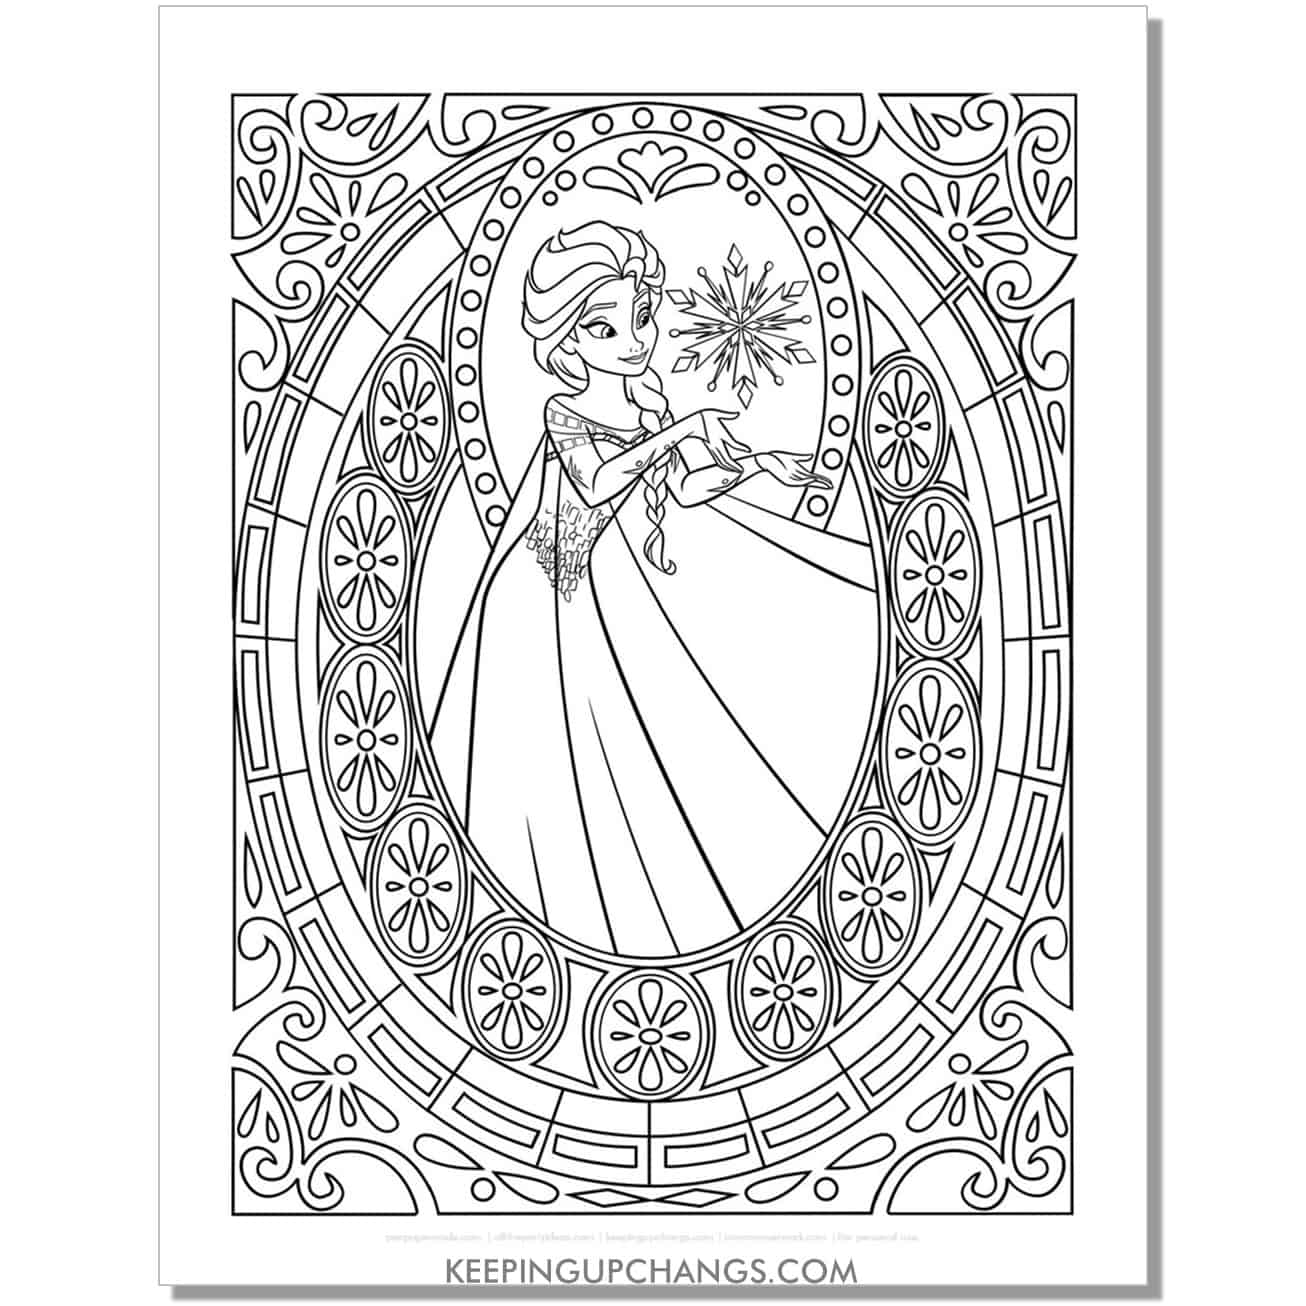 free elsa stained glass detailed, intricate frozen coloring page.